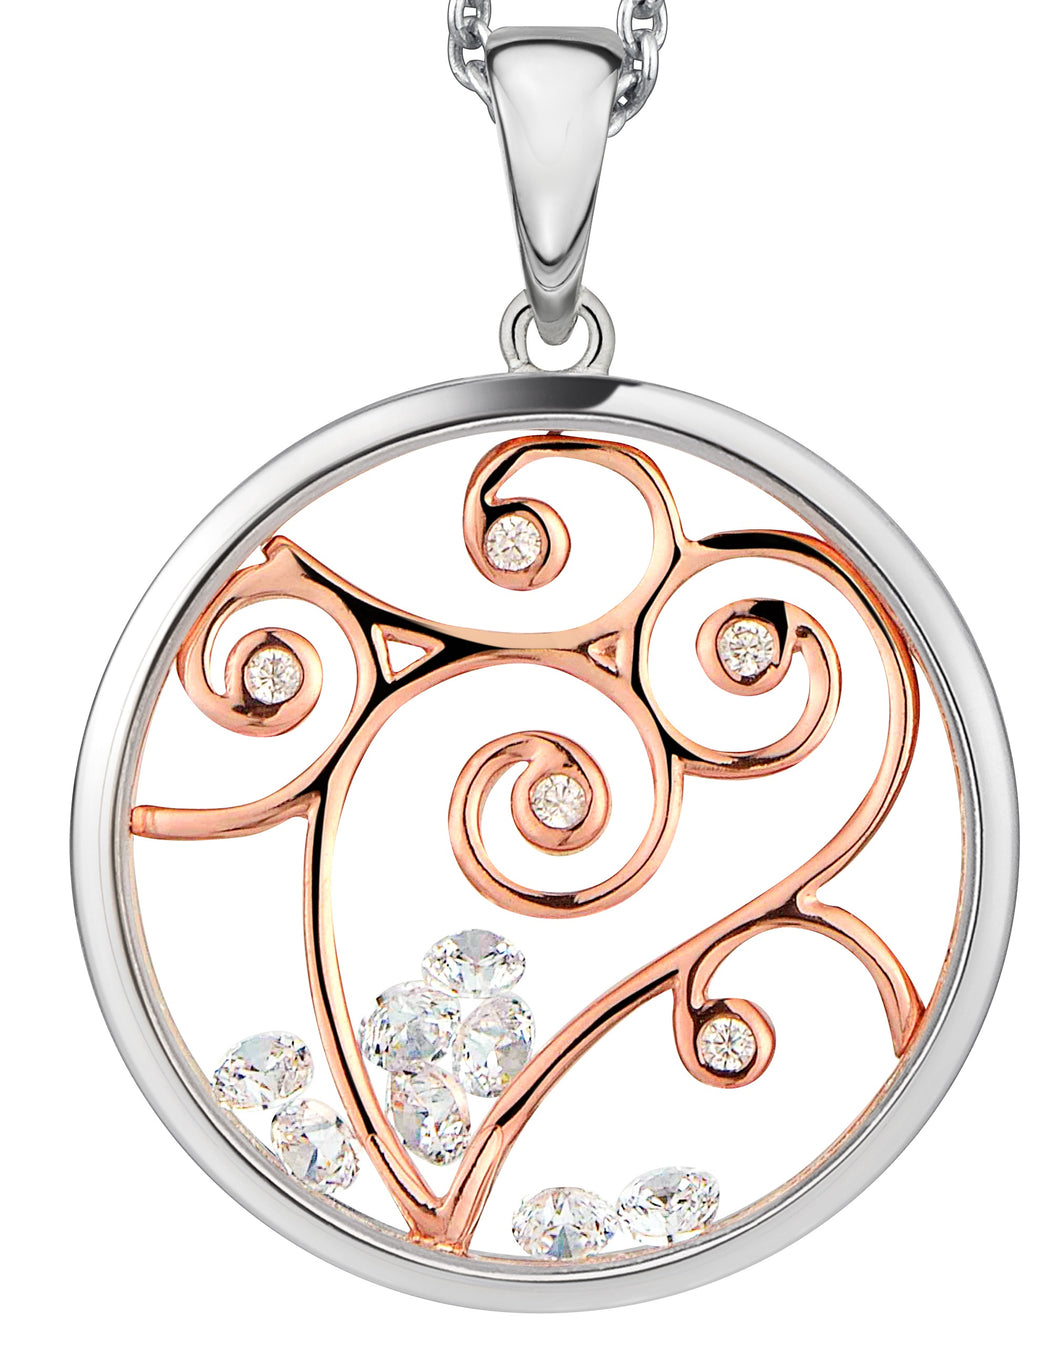 PA513516 ASTRA Sterling Silver Autumn Pendant 16mm 40% Off FINAL SALE